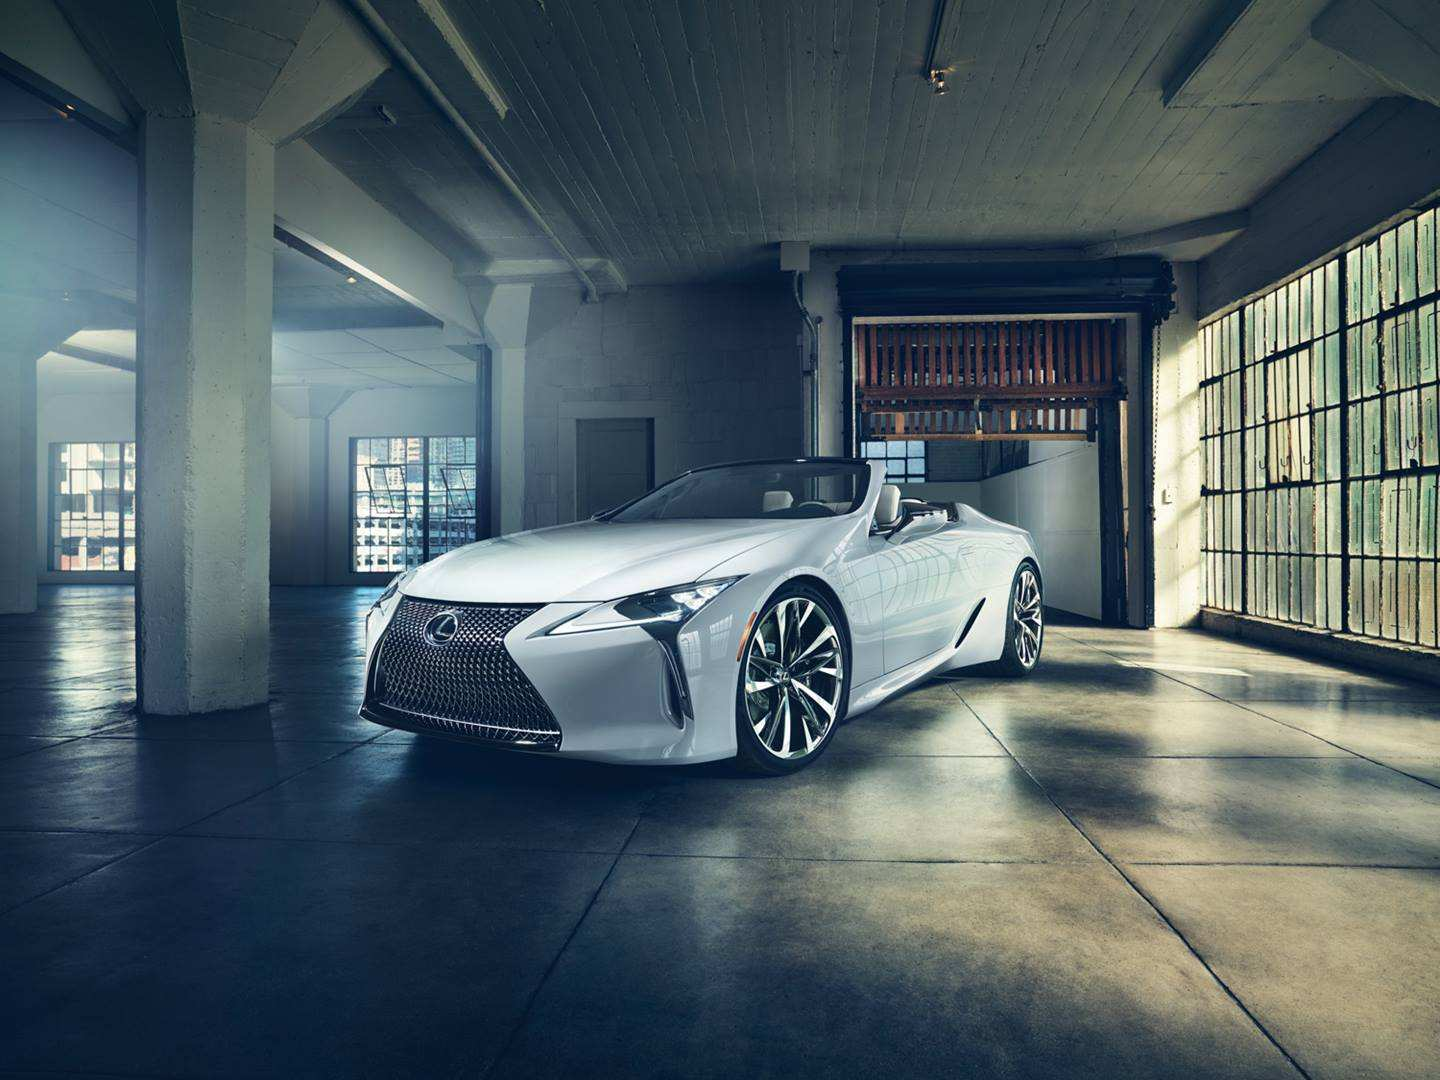 69 All New 2020 Lexus Lc 500 Convertible Price Review